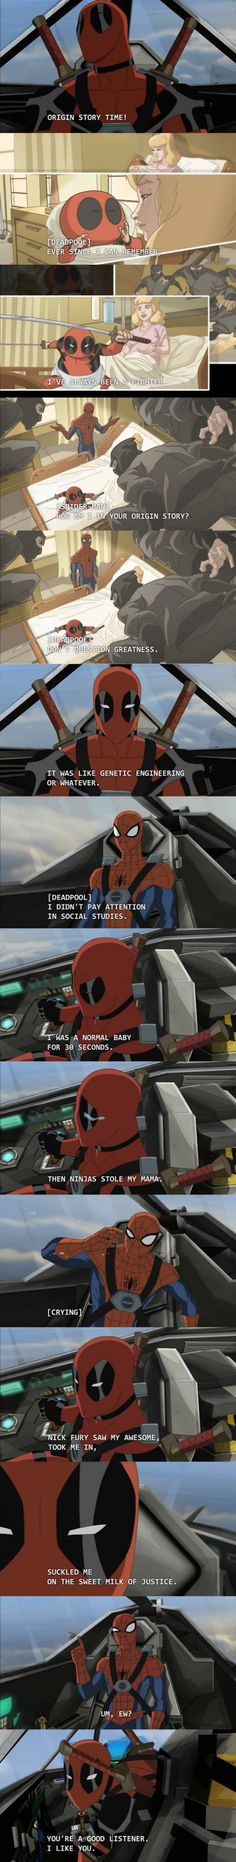 Deadpool Origin Story Time!  // funny pictures - funny photos - funny images - funny pics - funny quotes - #lol #humor #funnypictures